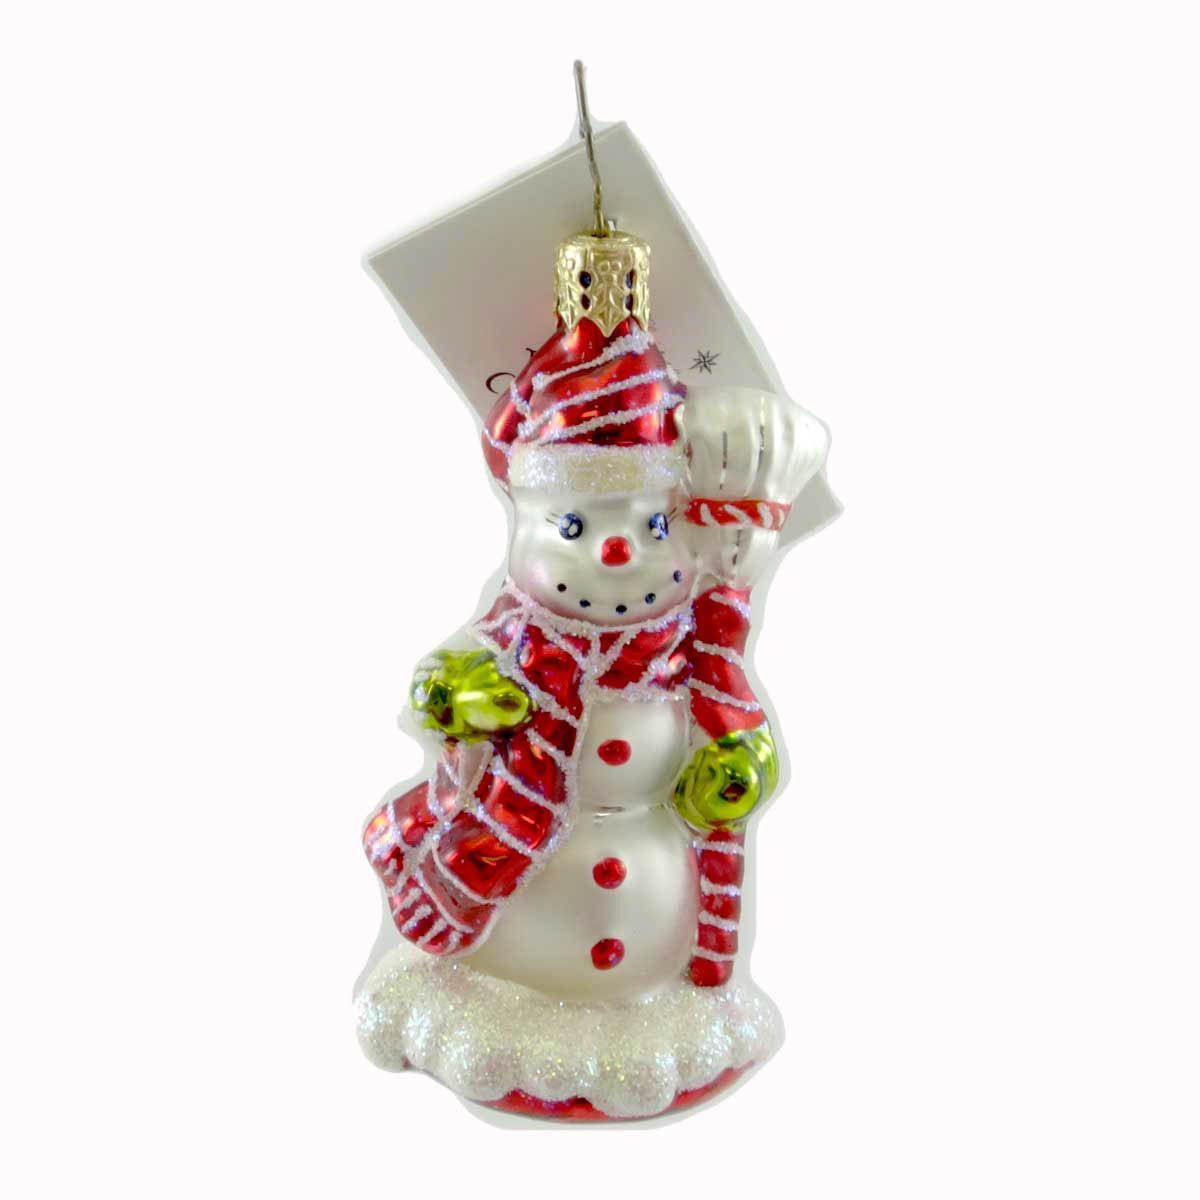 Old World Christmas Ornaments: Toilet Plunger Glass Blown Ornaments ...